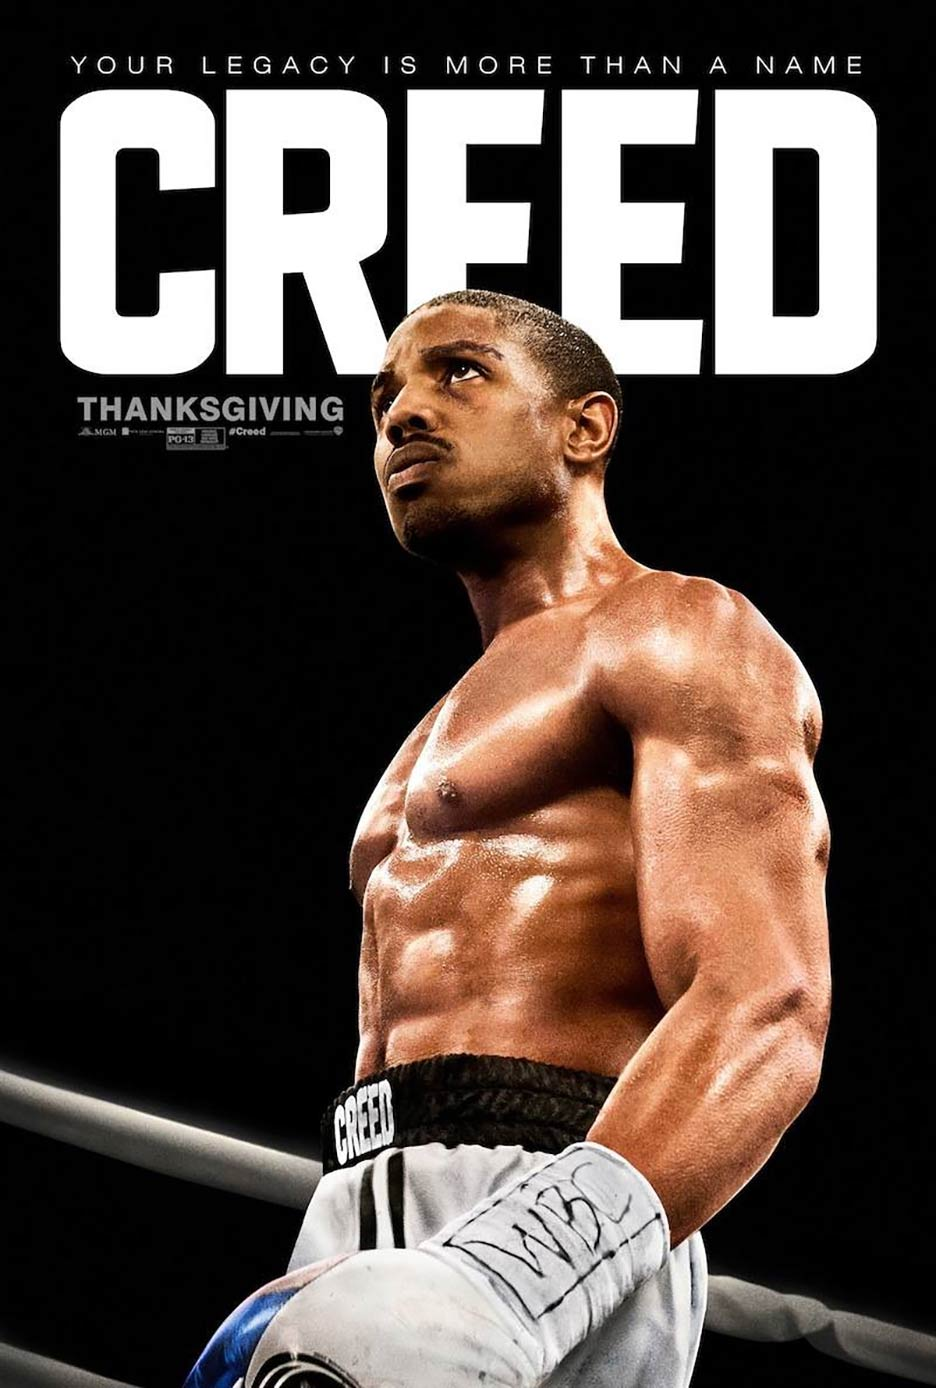 creed-poster-3.jpg